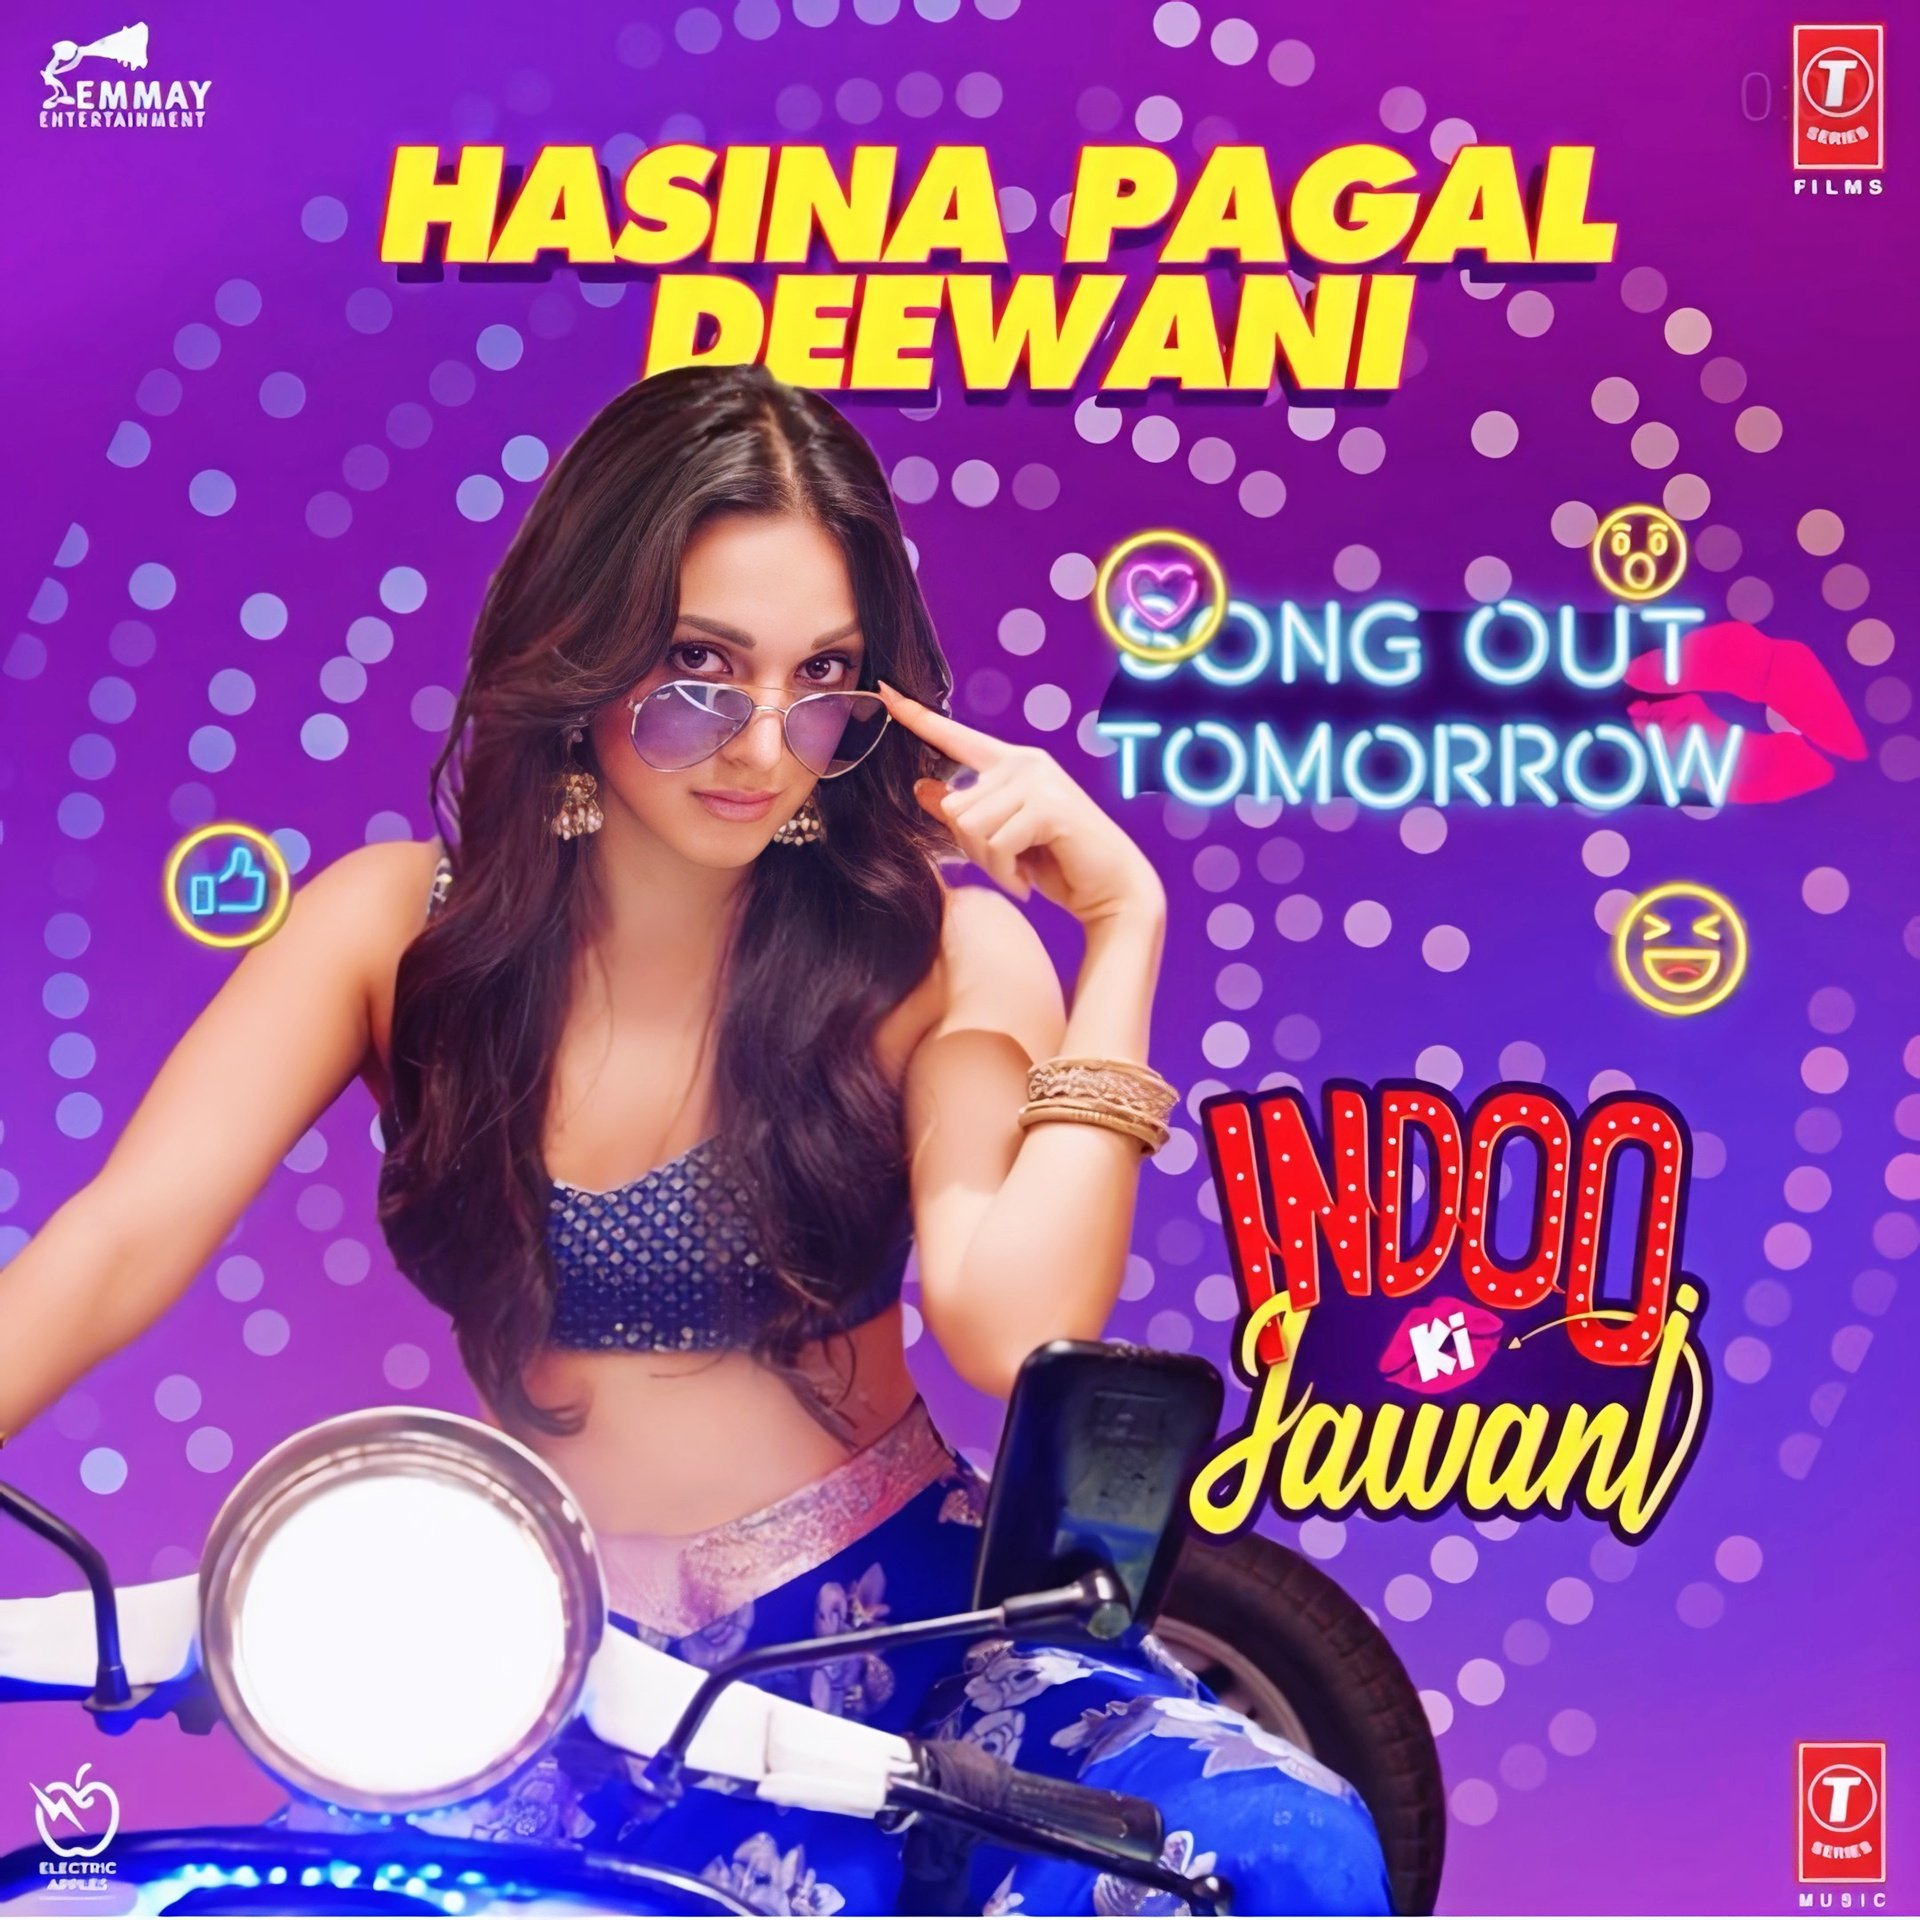 Hasina Pagal Deewani (Indoo Ki Jawani) 2020 Hindi Video Song 1080p HDRip 67MB Download